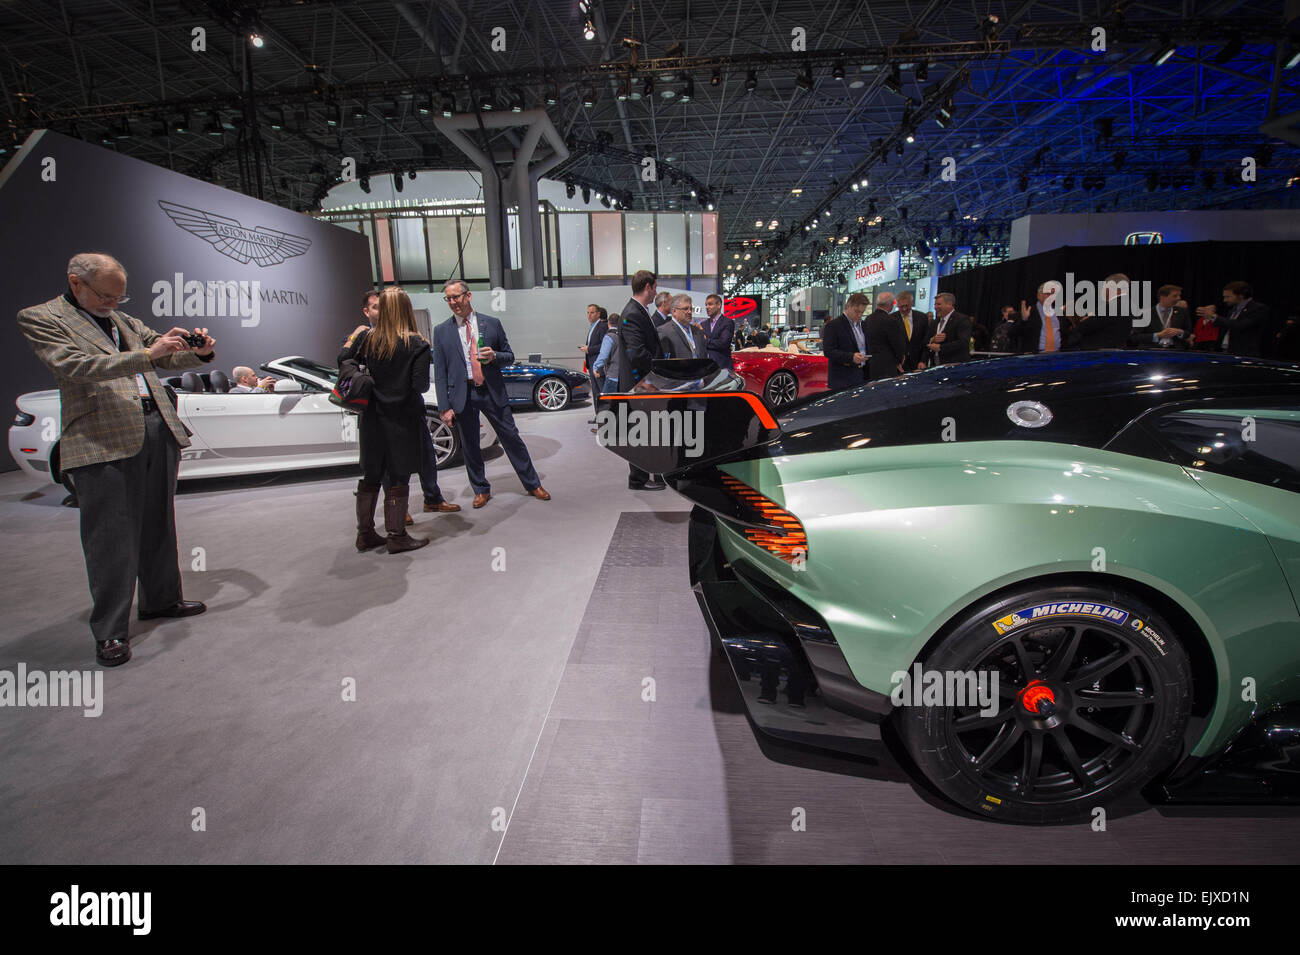 Manhattan, New York, USA. 1st Apr, 2015. A spectator photographs the Aston Martin Vulcan, limited to a production - Stock Image